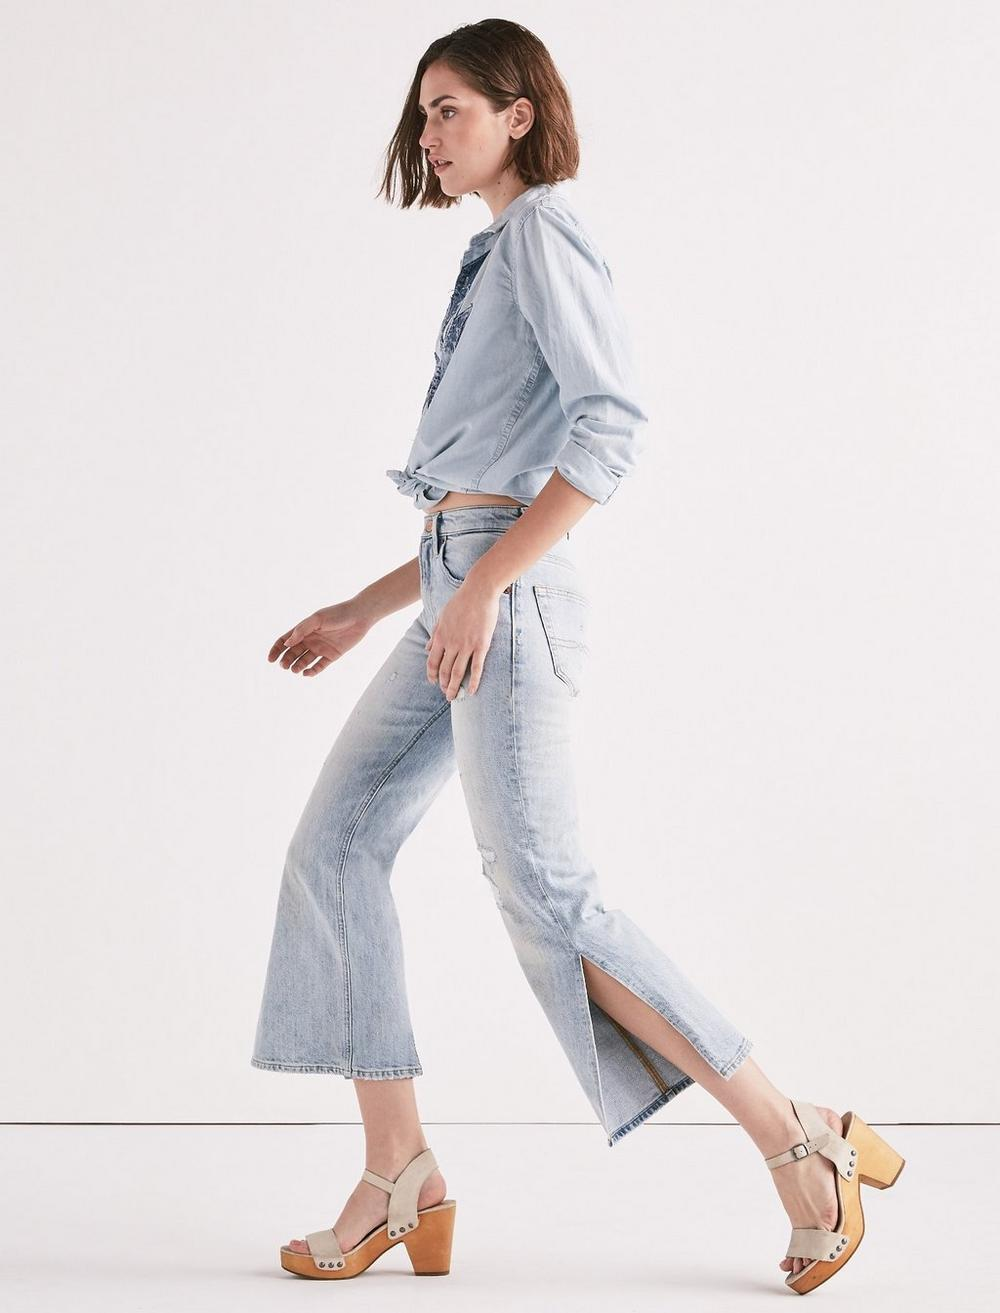 LUCKY PINS HIGH RISE SIDE SLIT JEAN IN MIRA MAR, image 2